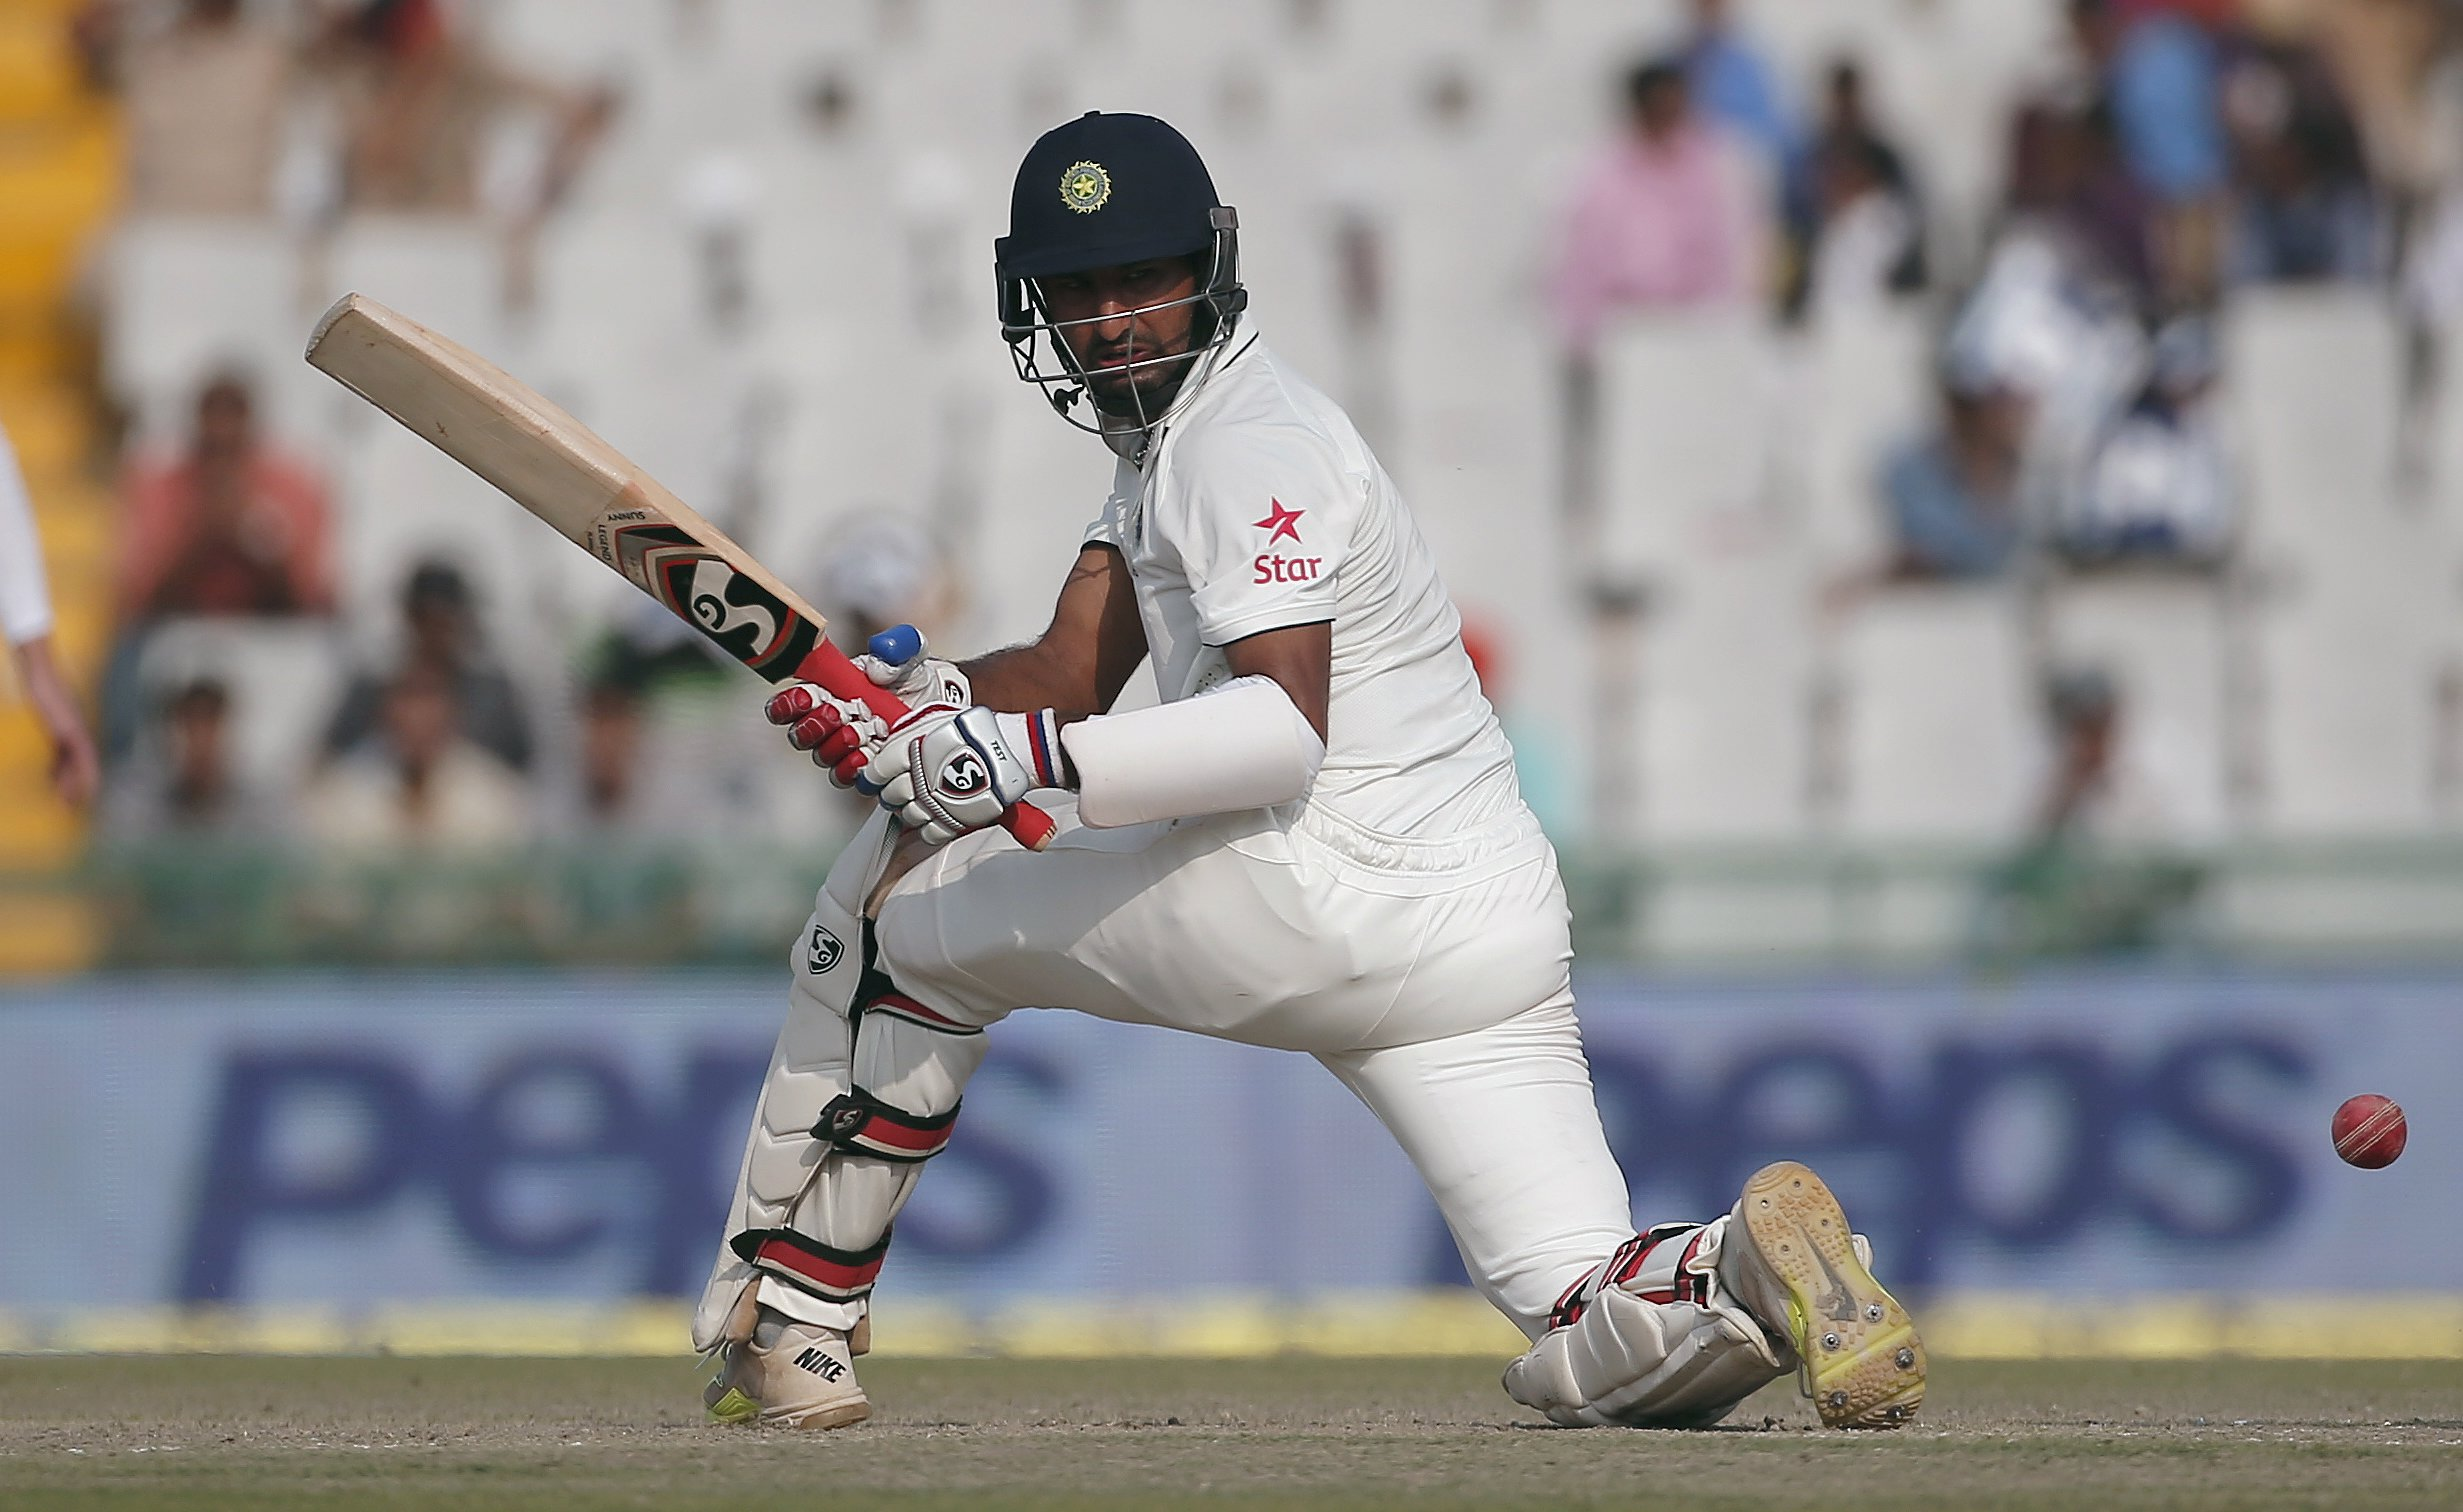 India's Cheteshwar Pujara plays a shot during the second day of their first cricket test match against South Africa, in Mohali, India, November 6, 2015. REUTERS/Adnan Abidi